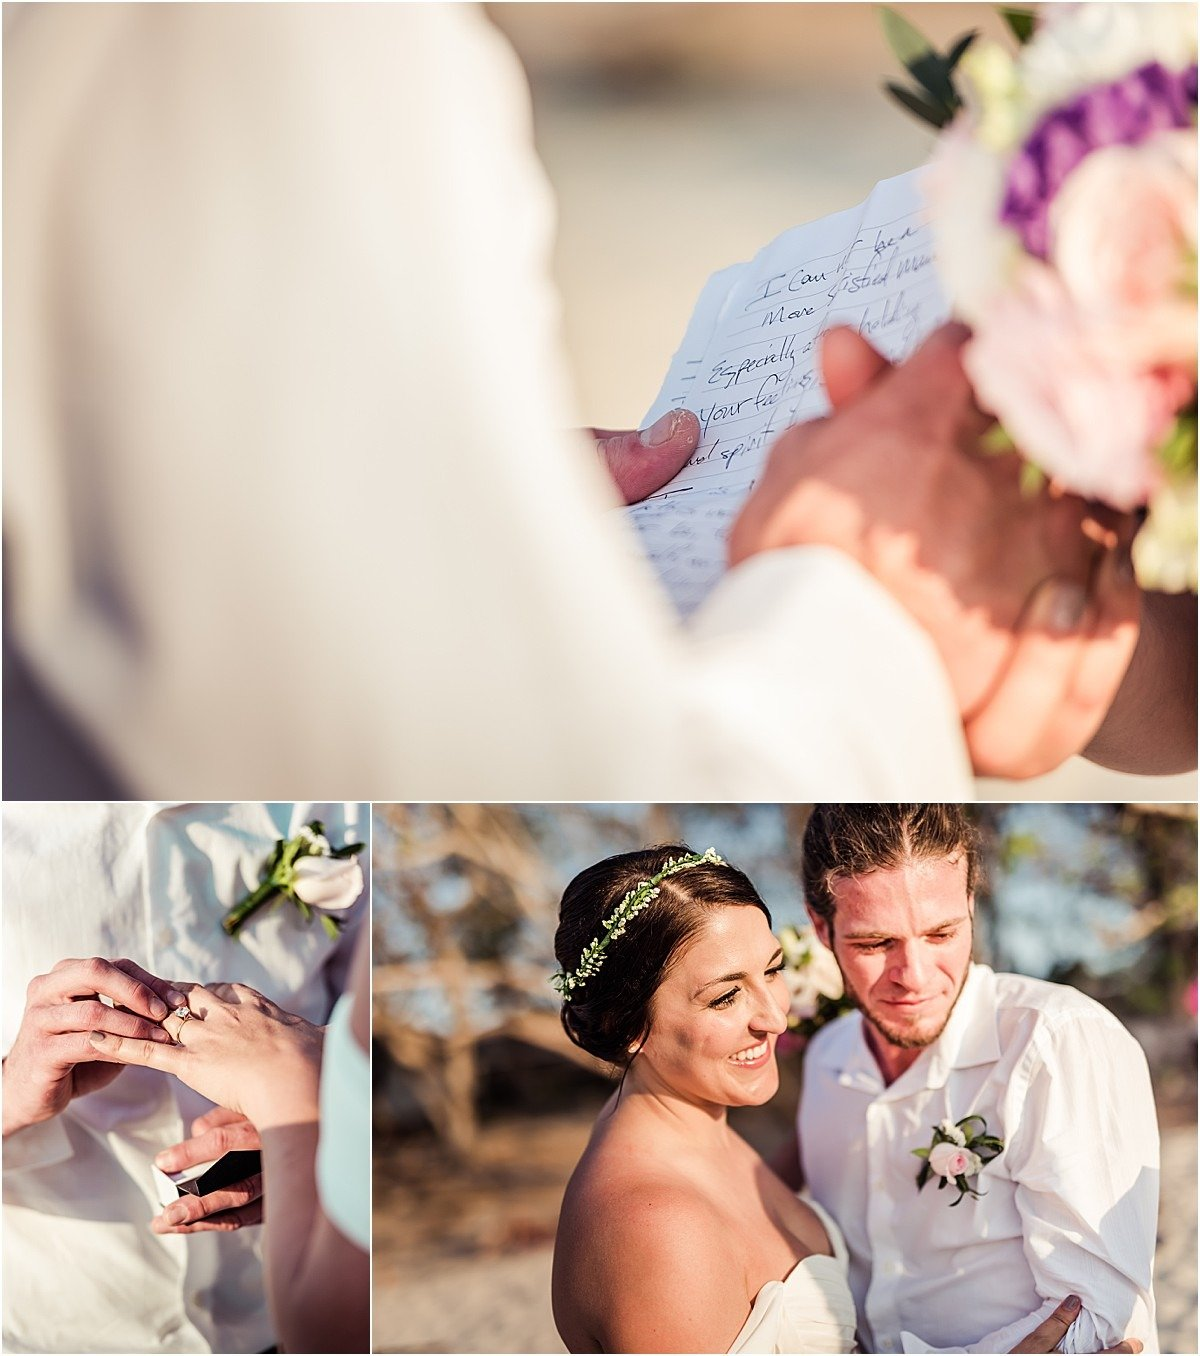 vows ceremony elope on Playa conchal